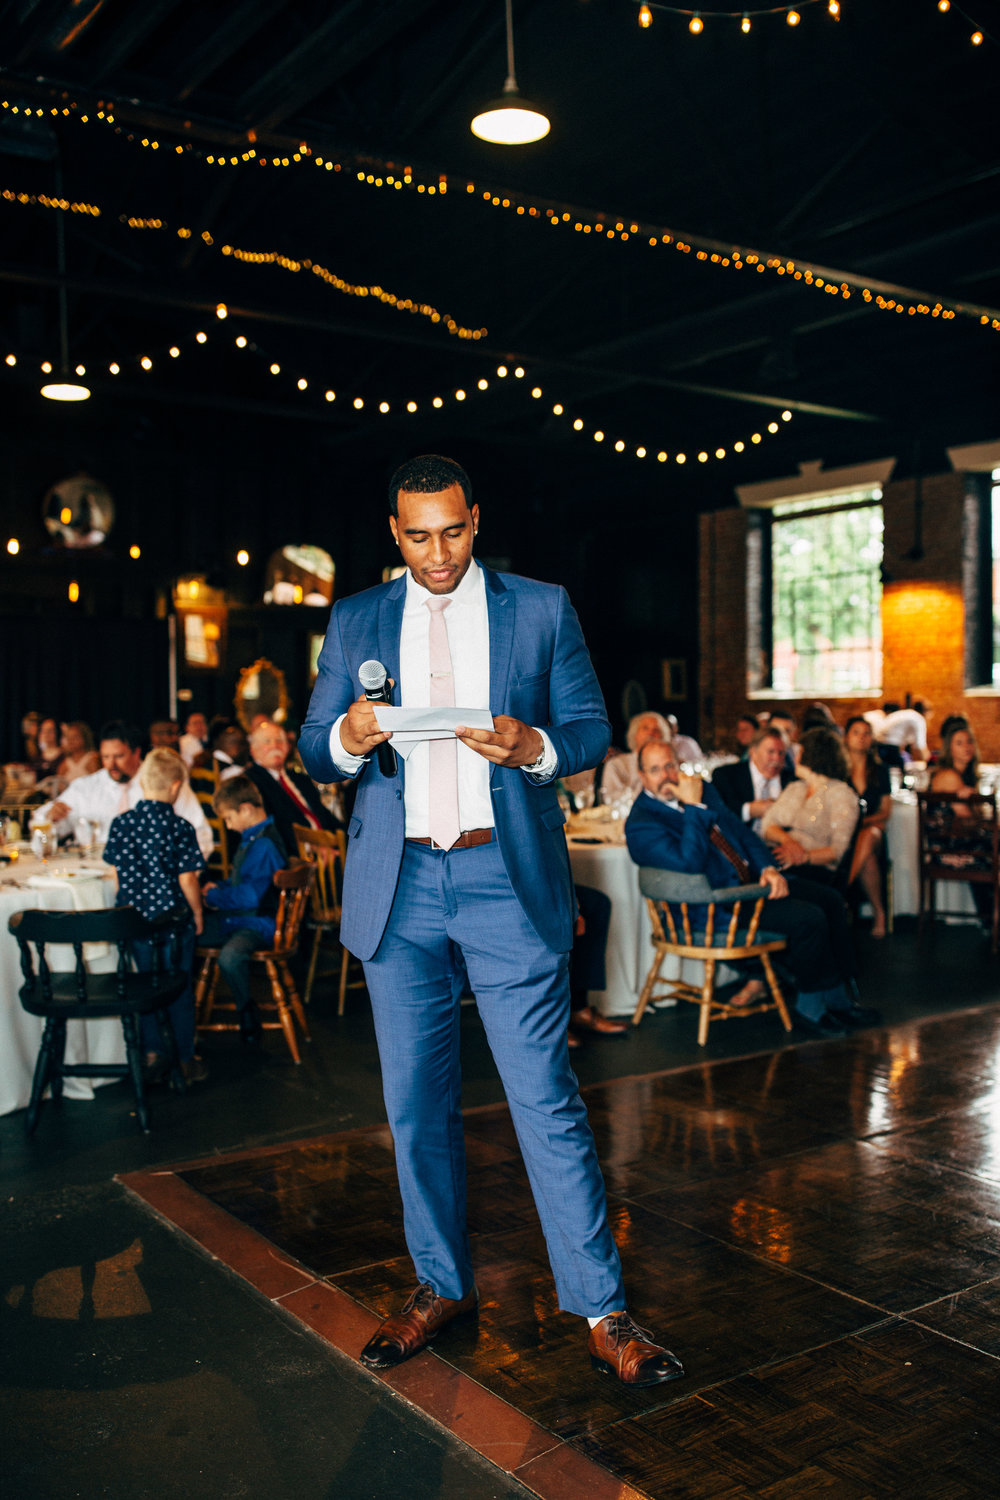 best man's speech during wedding reception at the Inn at the Old Silk Mill